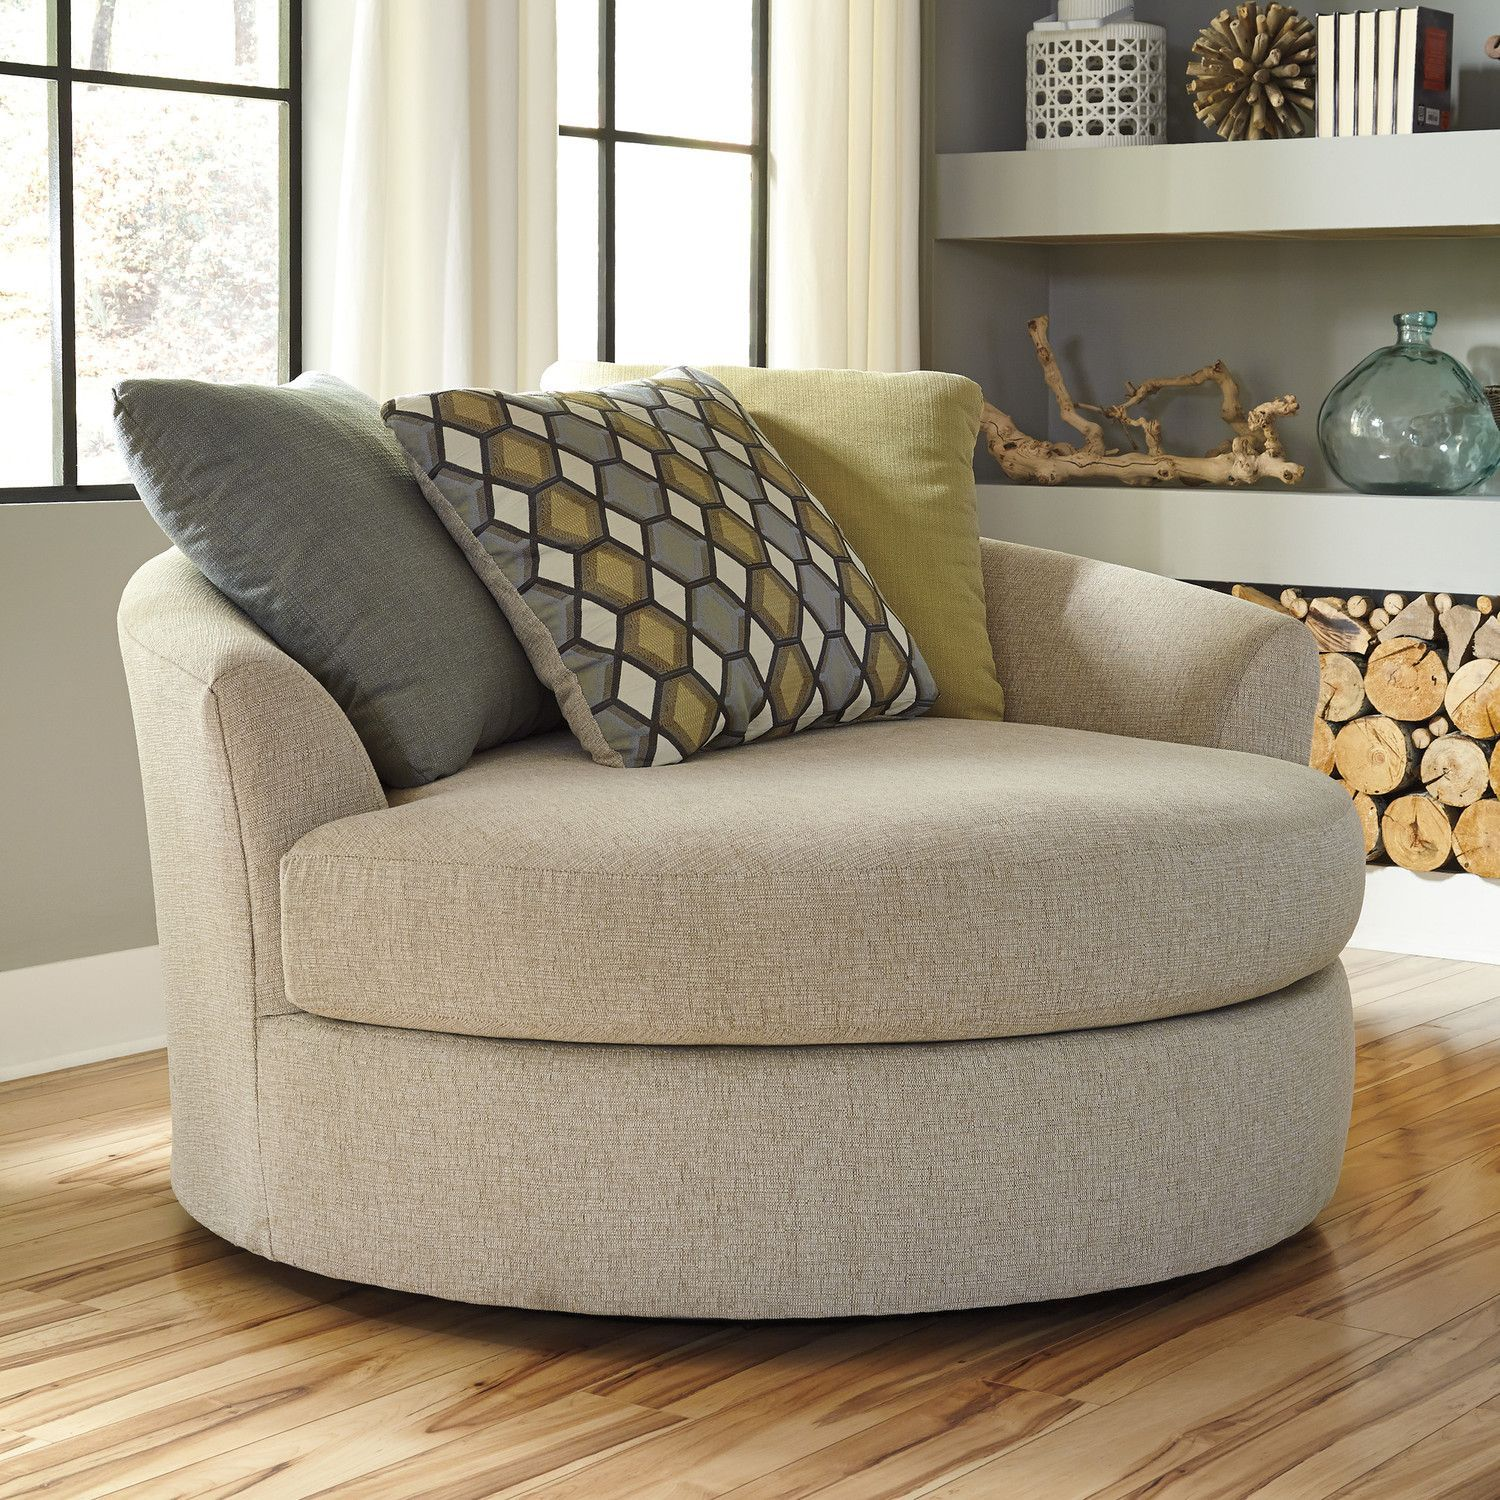 Benchcraft Casheral Oversized Swivel Chair Swivelchair Wayfair Living Room Chairs Swivel Chair Living Room Comfy Chairs